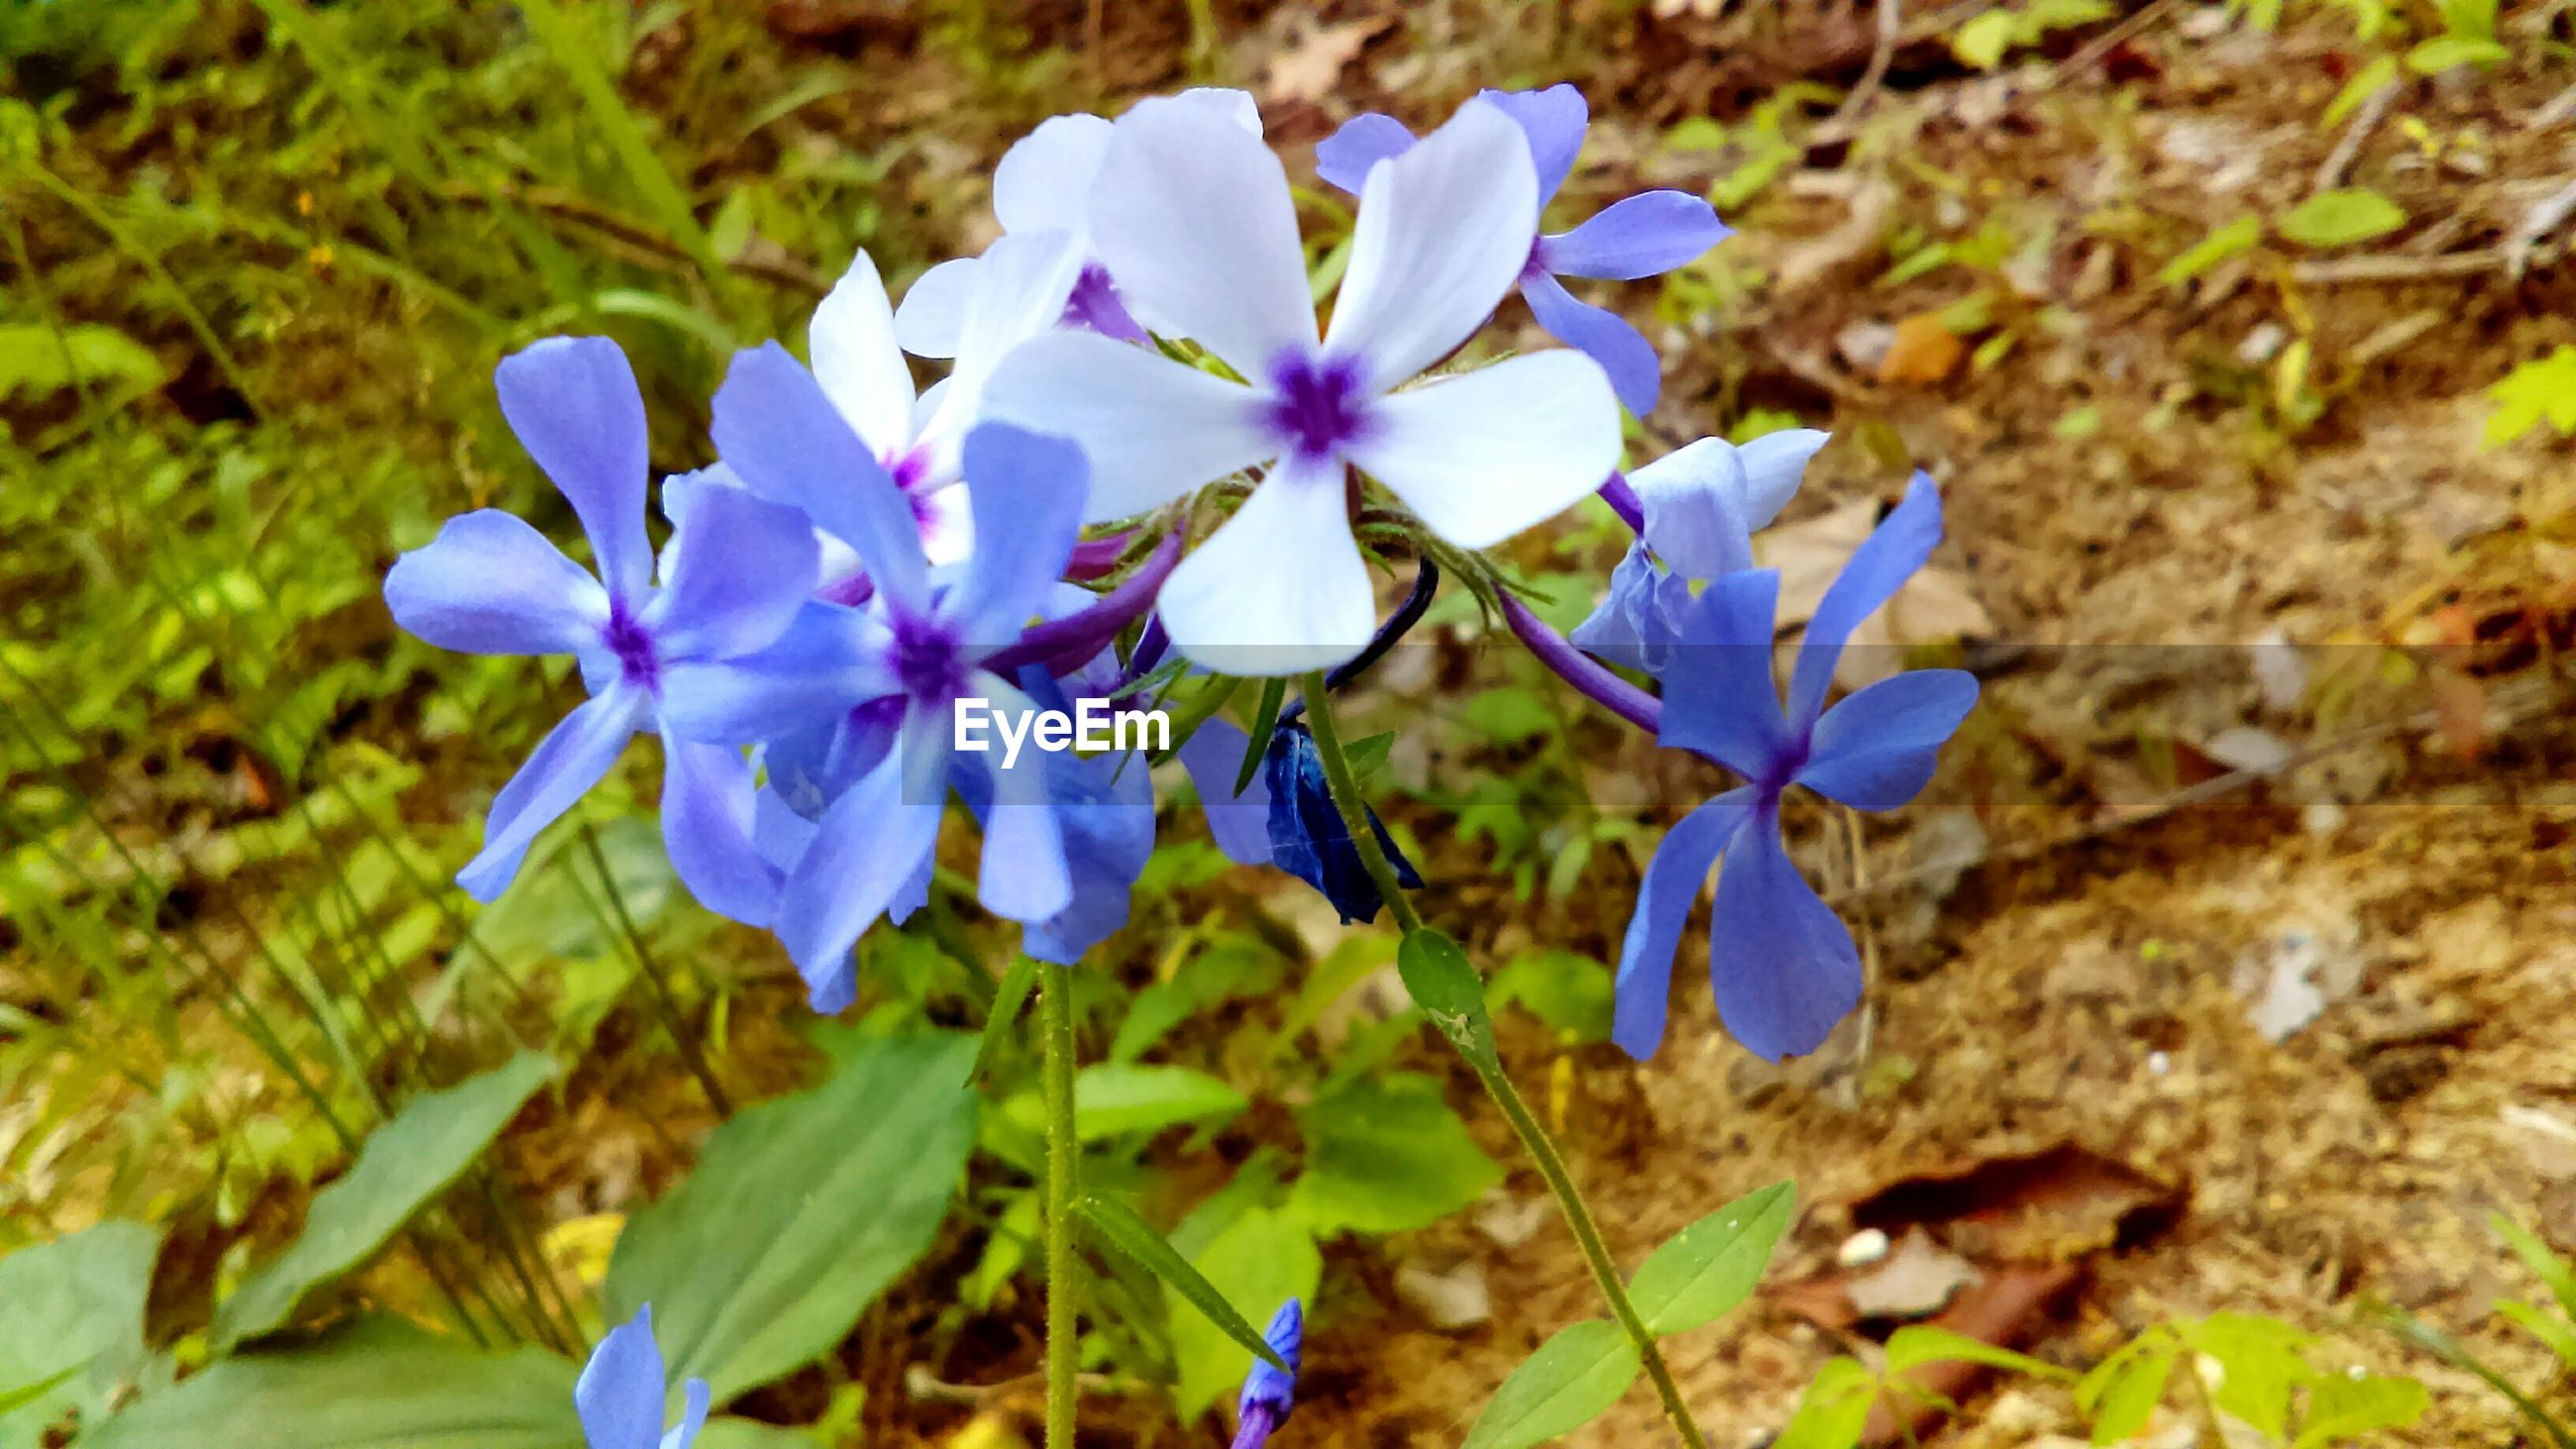 flower, purple, freshness, petal, fragility, growth, flower head, beauty in nature, nature, blooming, close-up, plant, focus on foreground, blue, leaf, field, high angle view, in bloom, day, outdoors